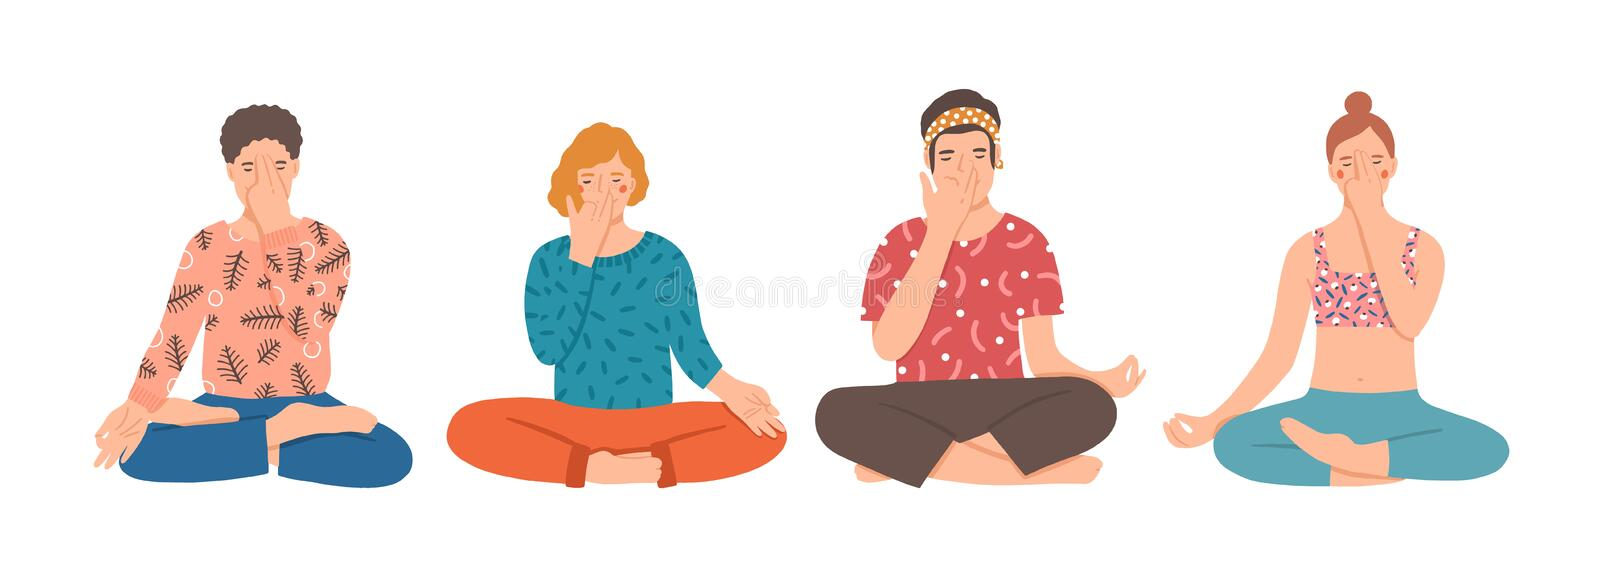 Group of people sitting cross-legged on floor and performing yoga breathing exercise. Young men and women practicing stock illustration